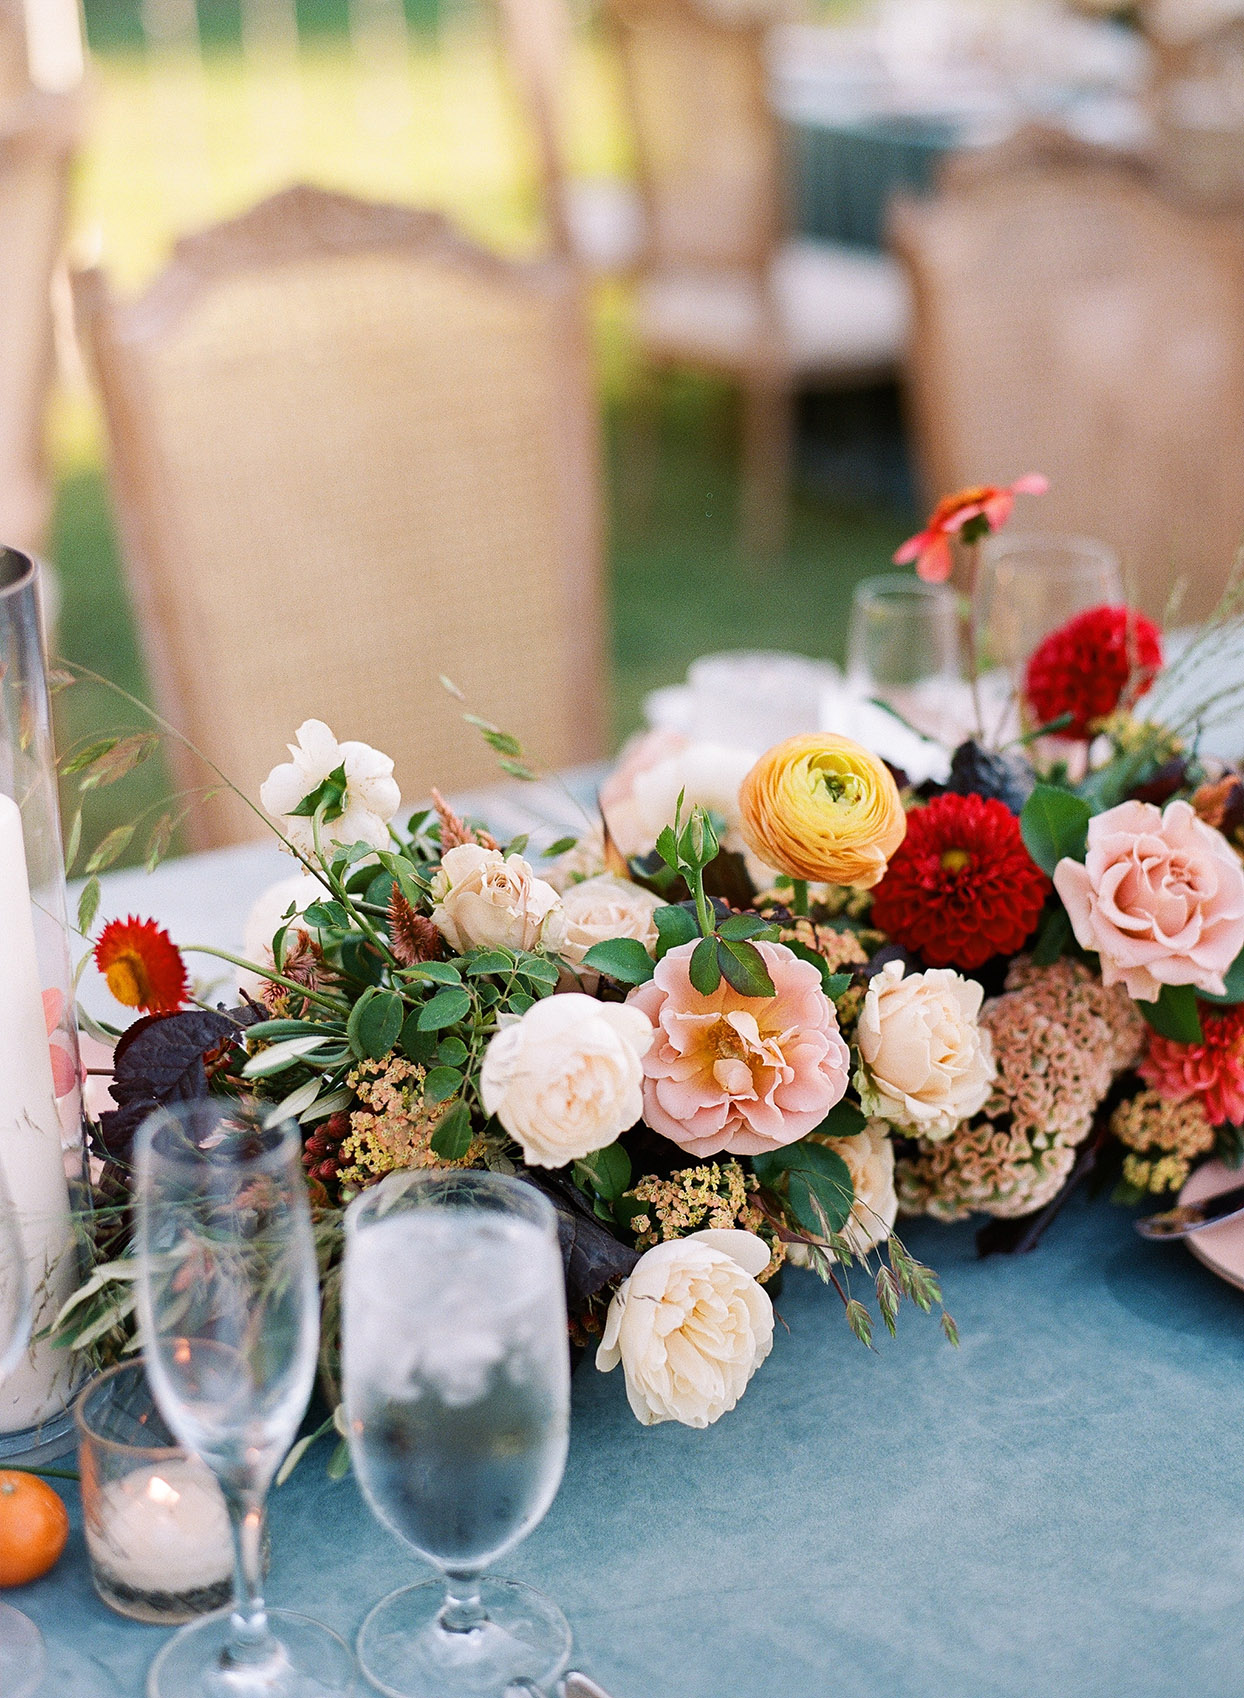 ideas to choose yellowish wedding bouquets for you 4 - Ideas to Choose Yellowish Wedding Bouquets for You